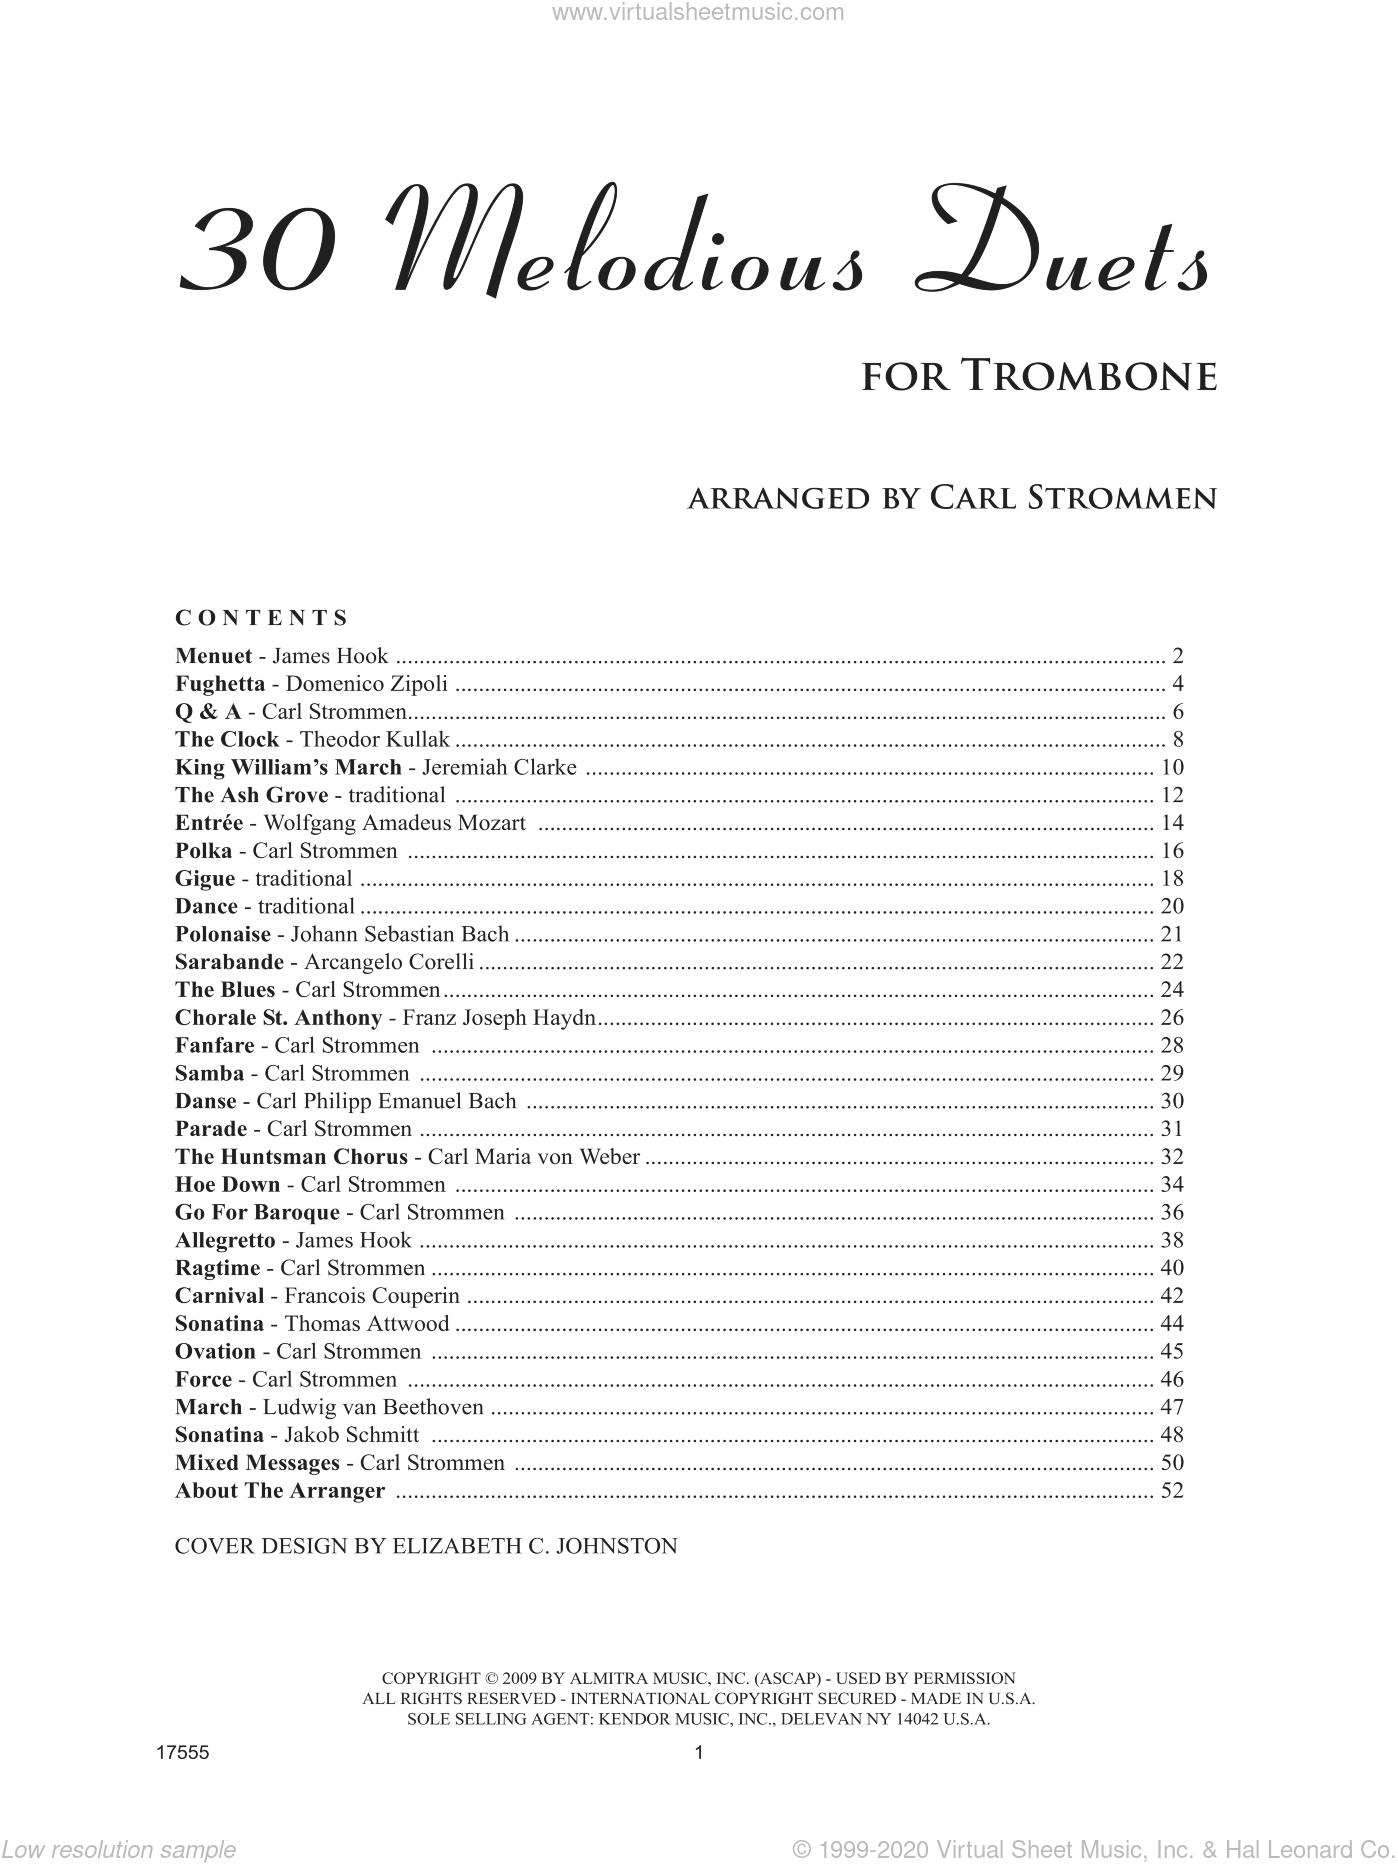 30 Melodious Duets sheet music for two trombones by Carl Strommen. Score Image Preview.